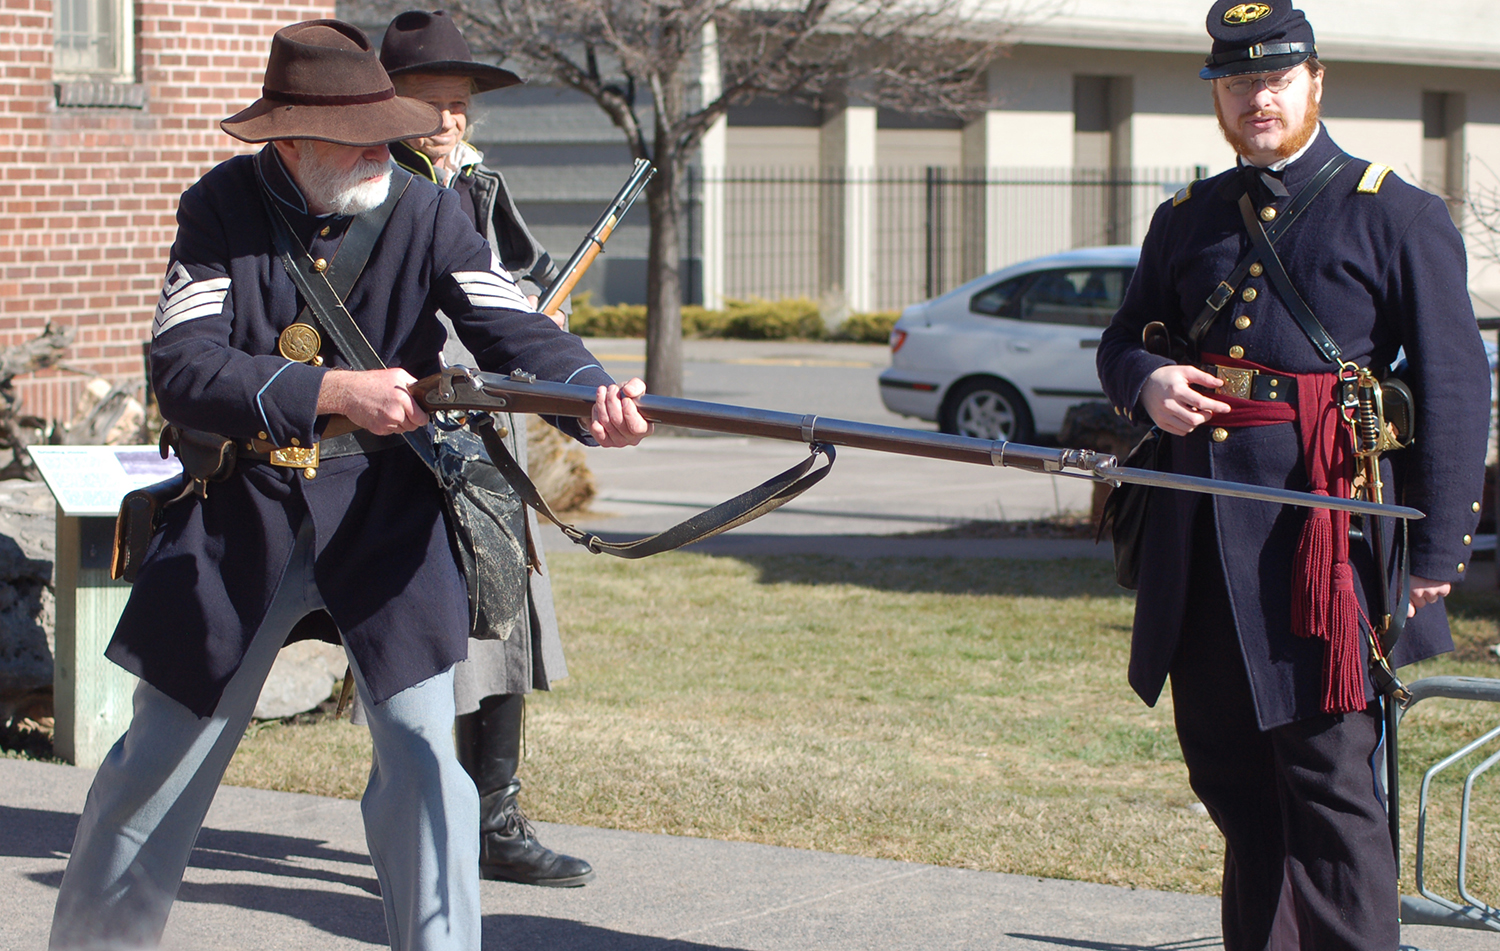 Marv Collision, left, demonstrates use of a Civil-war era bayonet during 1860s Days at the Klamath County Museum in February 2017. Members of the Cascade Civil War Society will return to the museum for this year's event Saturday, Feb. 10. At right is Civil War re-enactor Clark Morningstar. (Klamath County Museum)